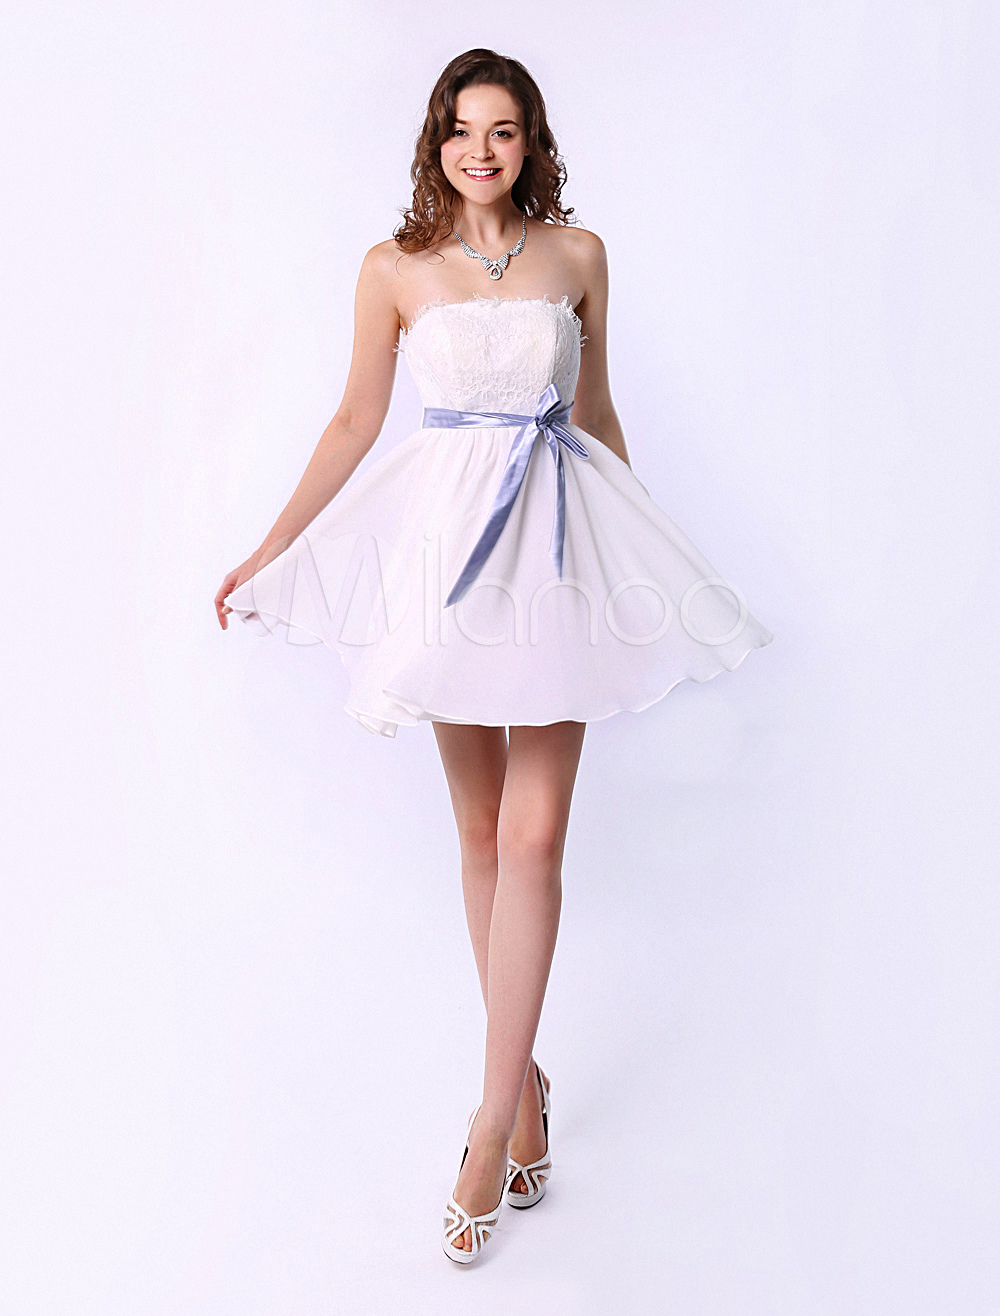 Strapless Short Bridesmaid Dress With Bows Detailing